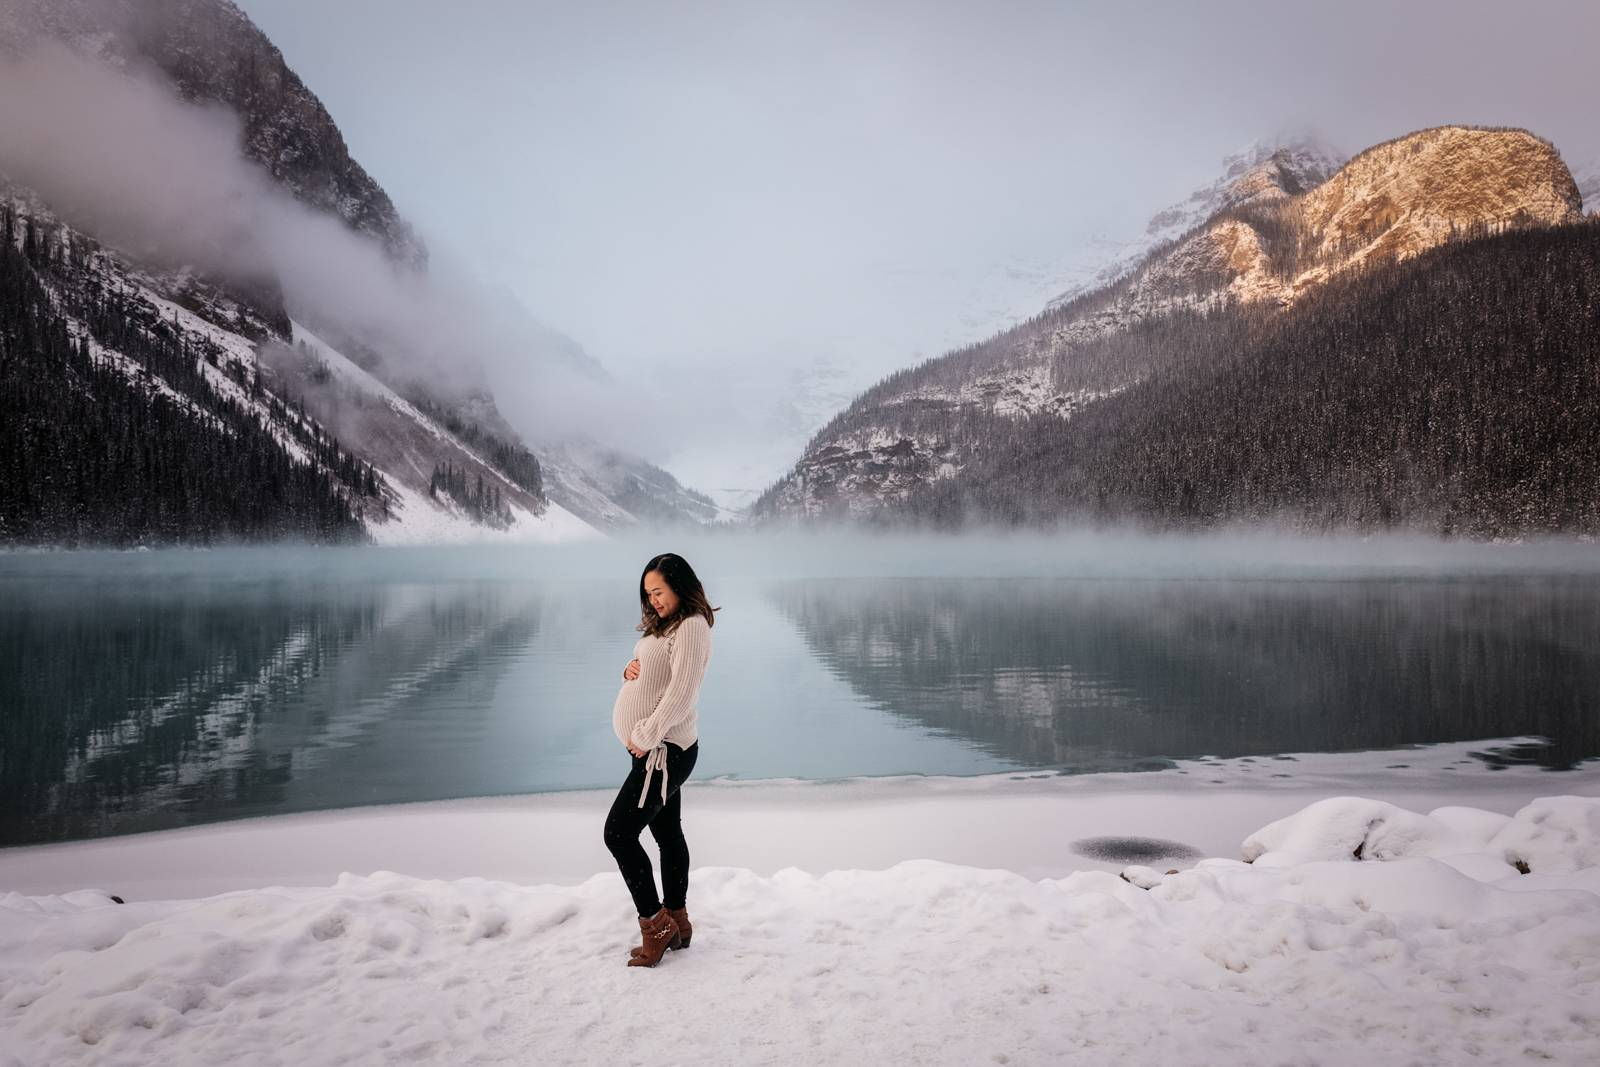 Sunrise-maternity-portrait-at-lake-louise